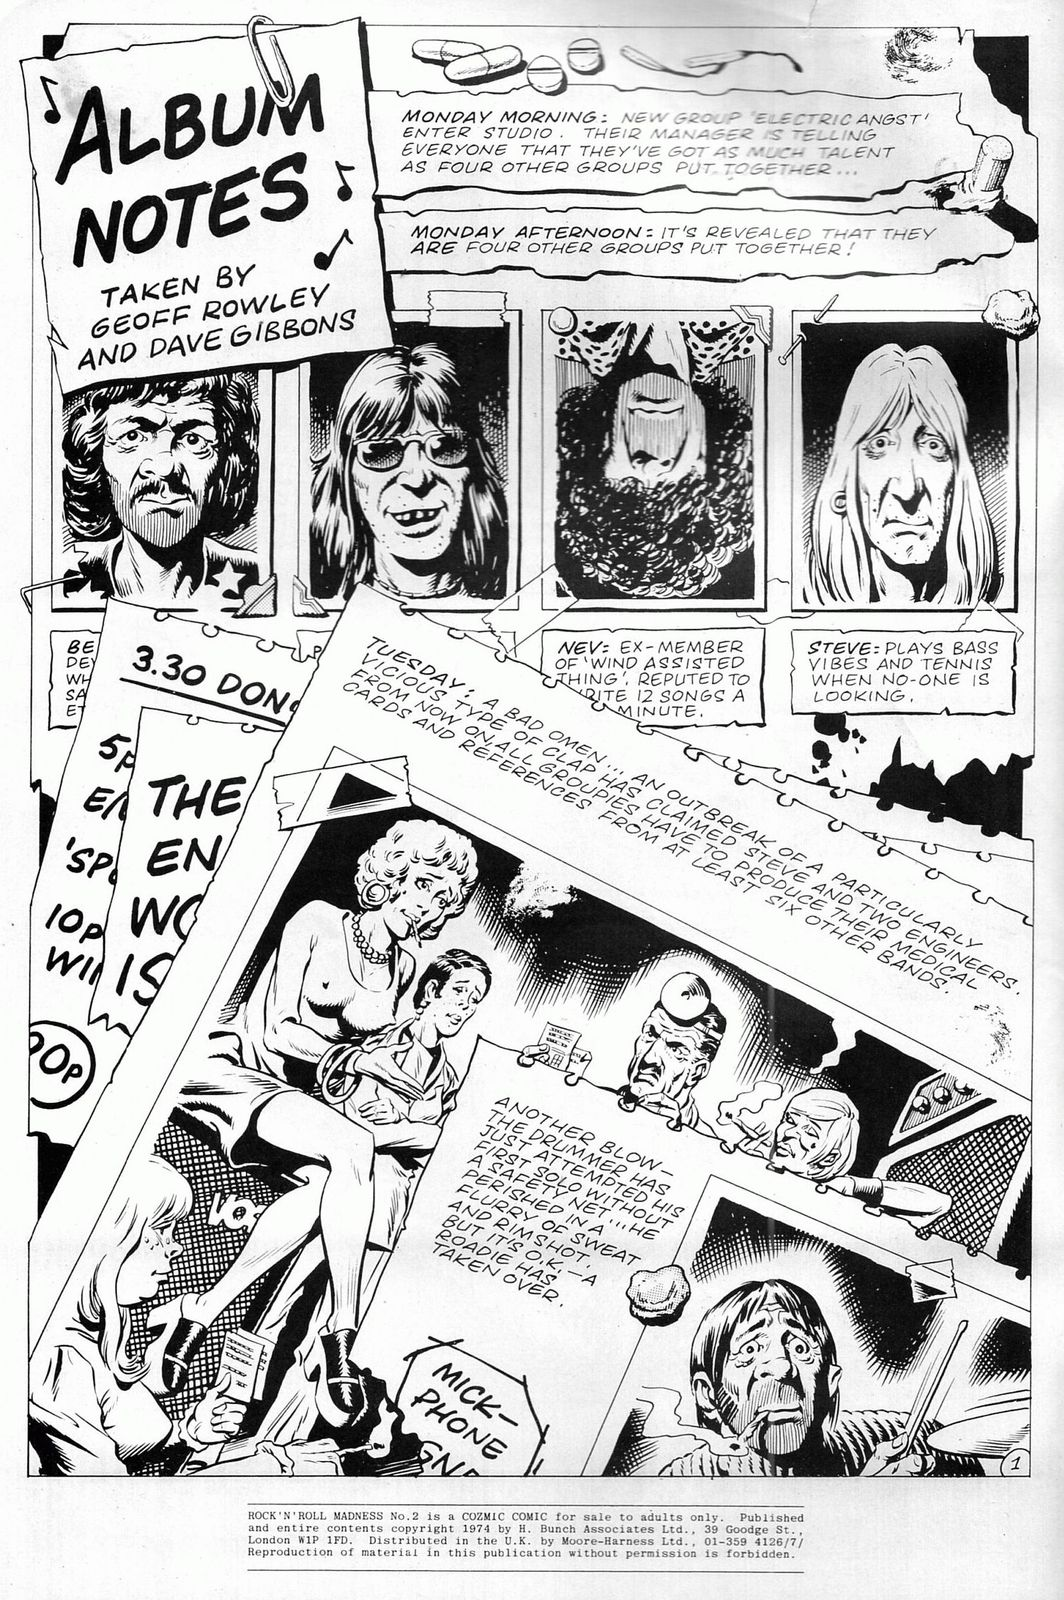 Rock n Roll Madness #2, Cozmic Comics 1984, British Underground comix